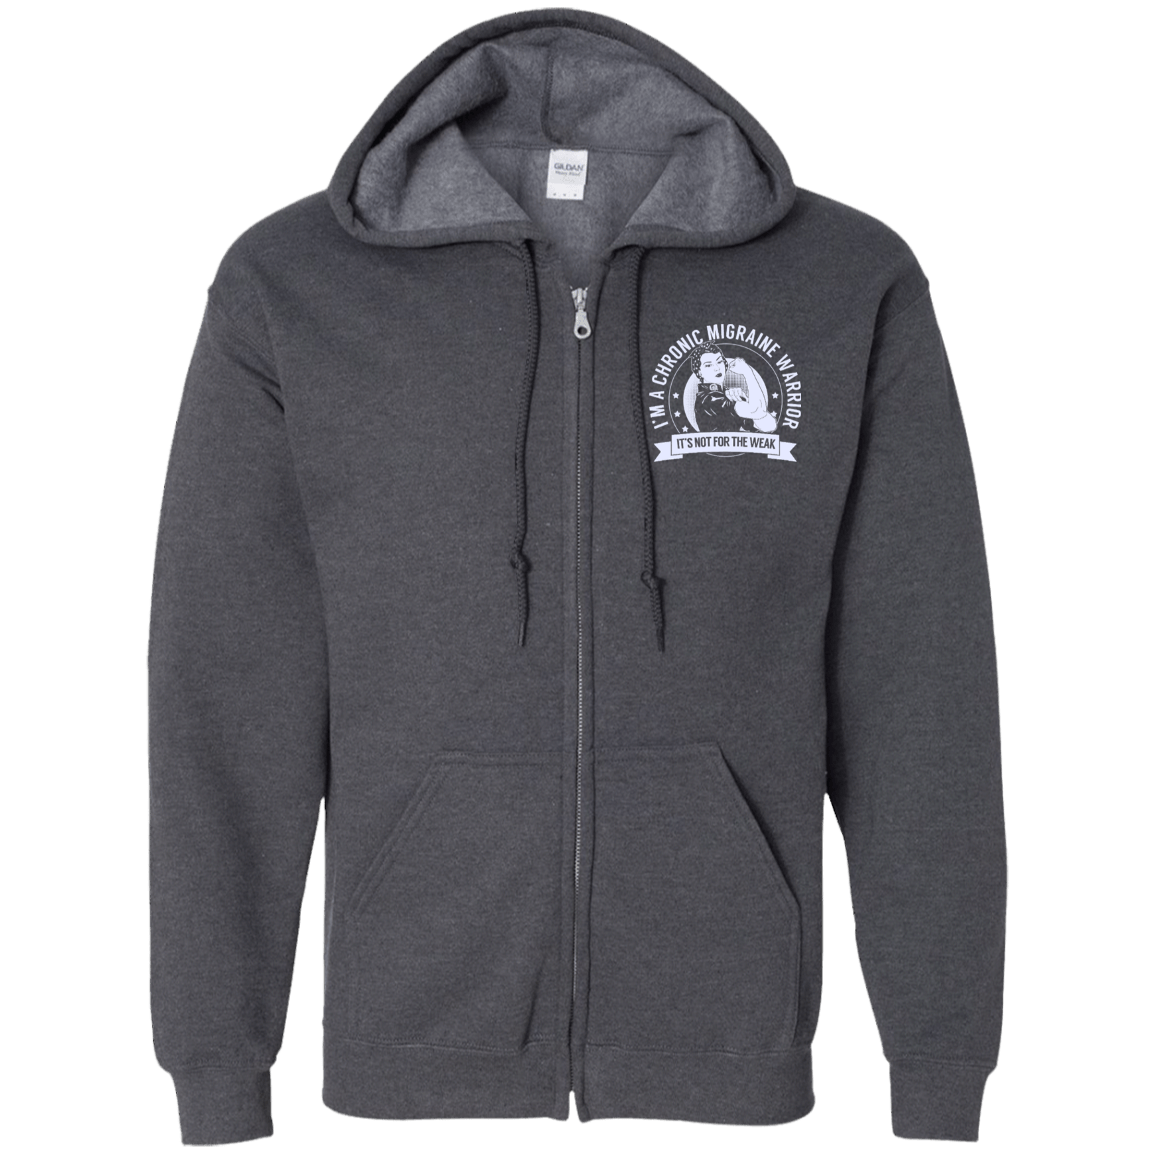 Chronic Migraine Warrior NFTW Zip Up Hooded Sweatshirt - The Unchargeables